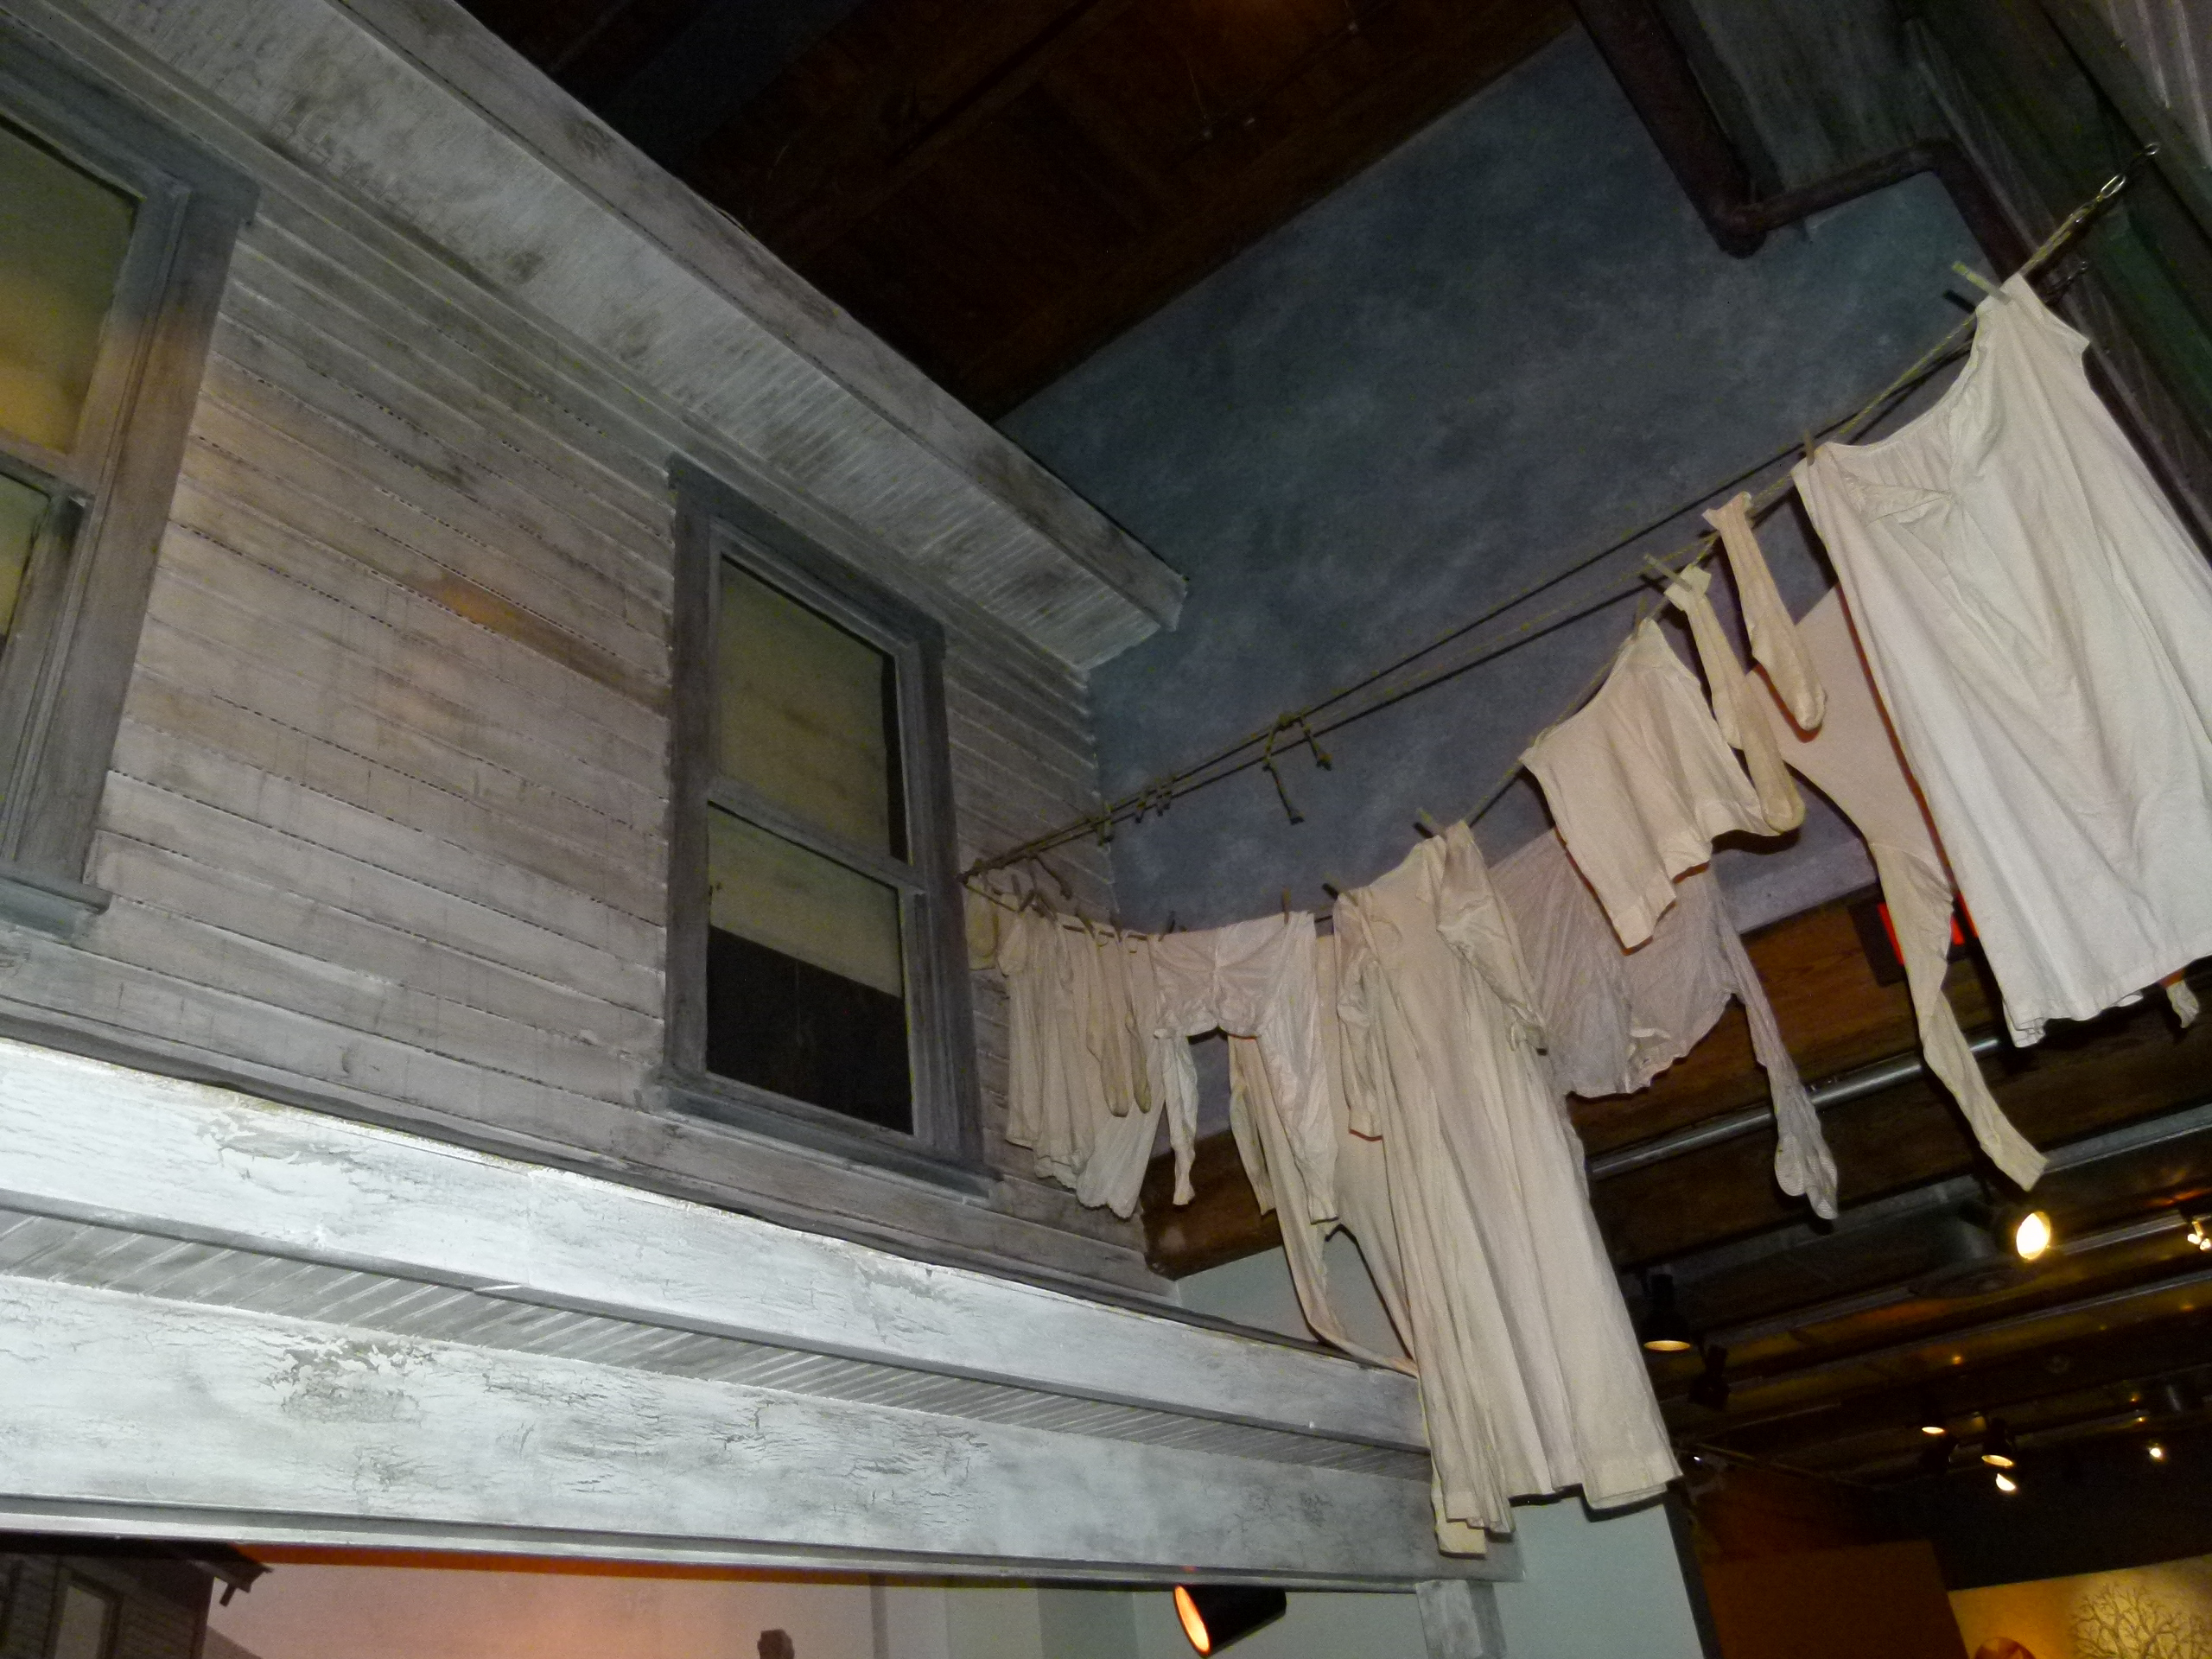 An accurate replication of a two story facade of a frame house building which were common in Pittsburgh's history, complete with the day's wash on the line.